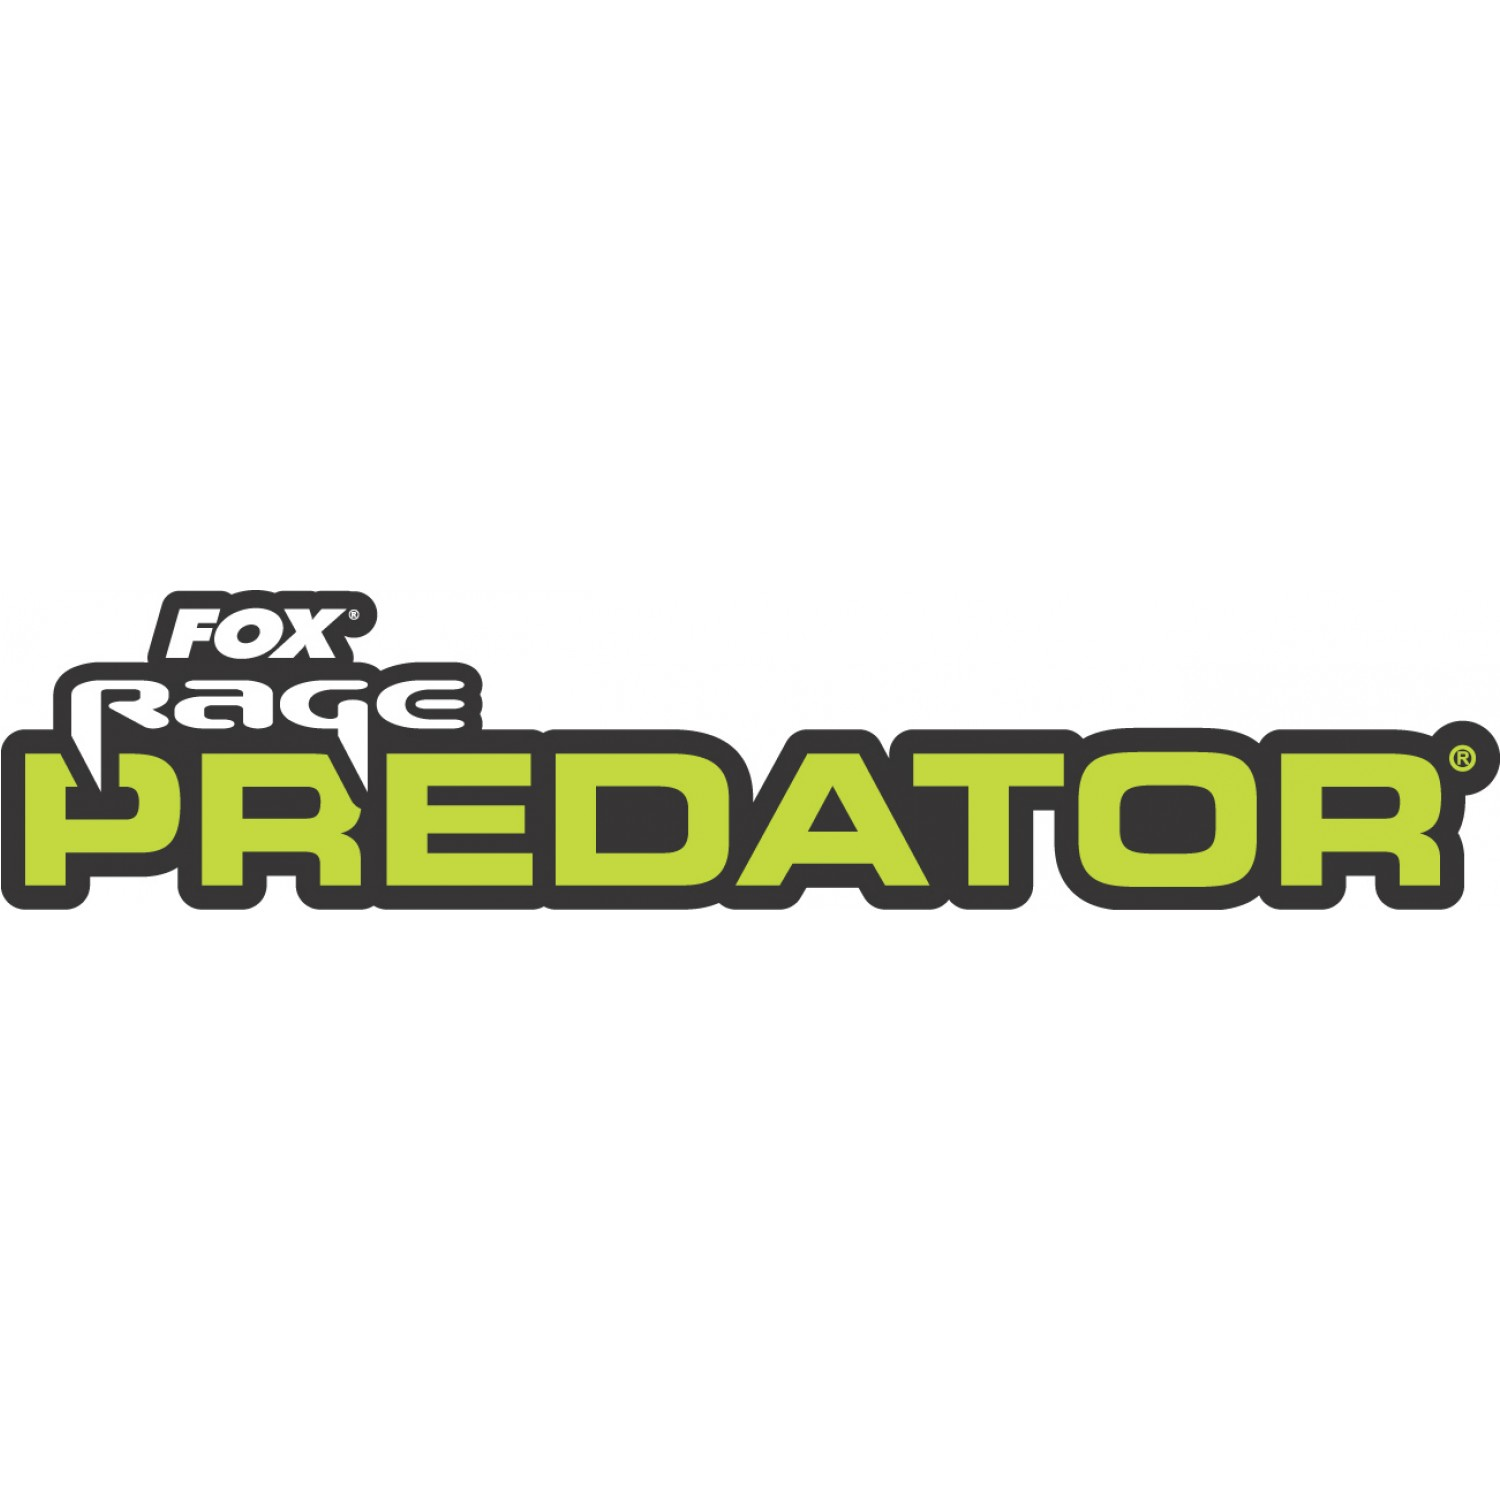 Fox Predator Boat Rod Rest